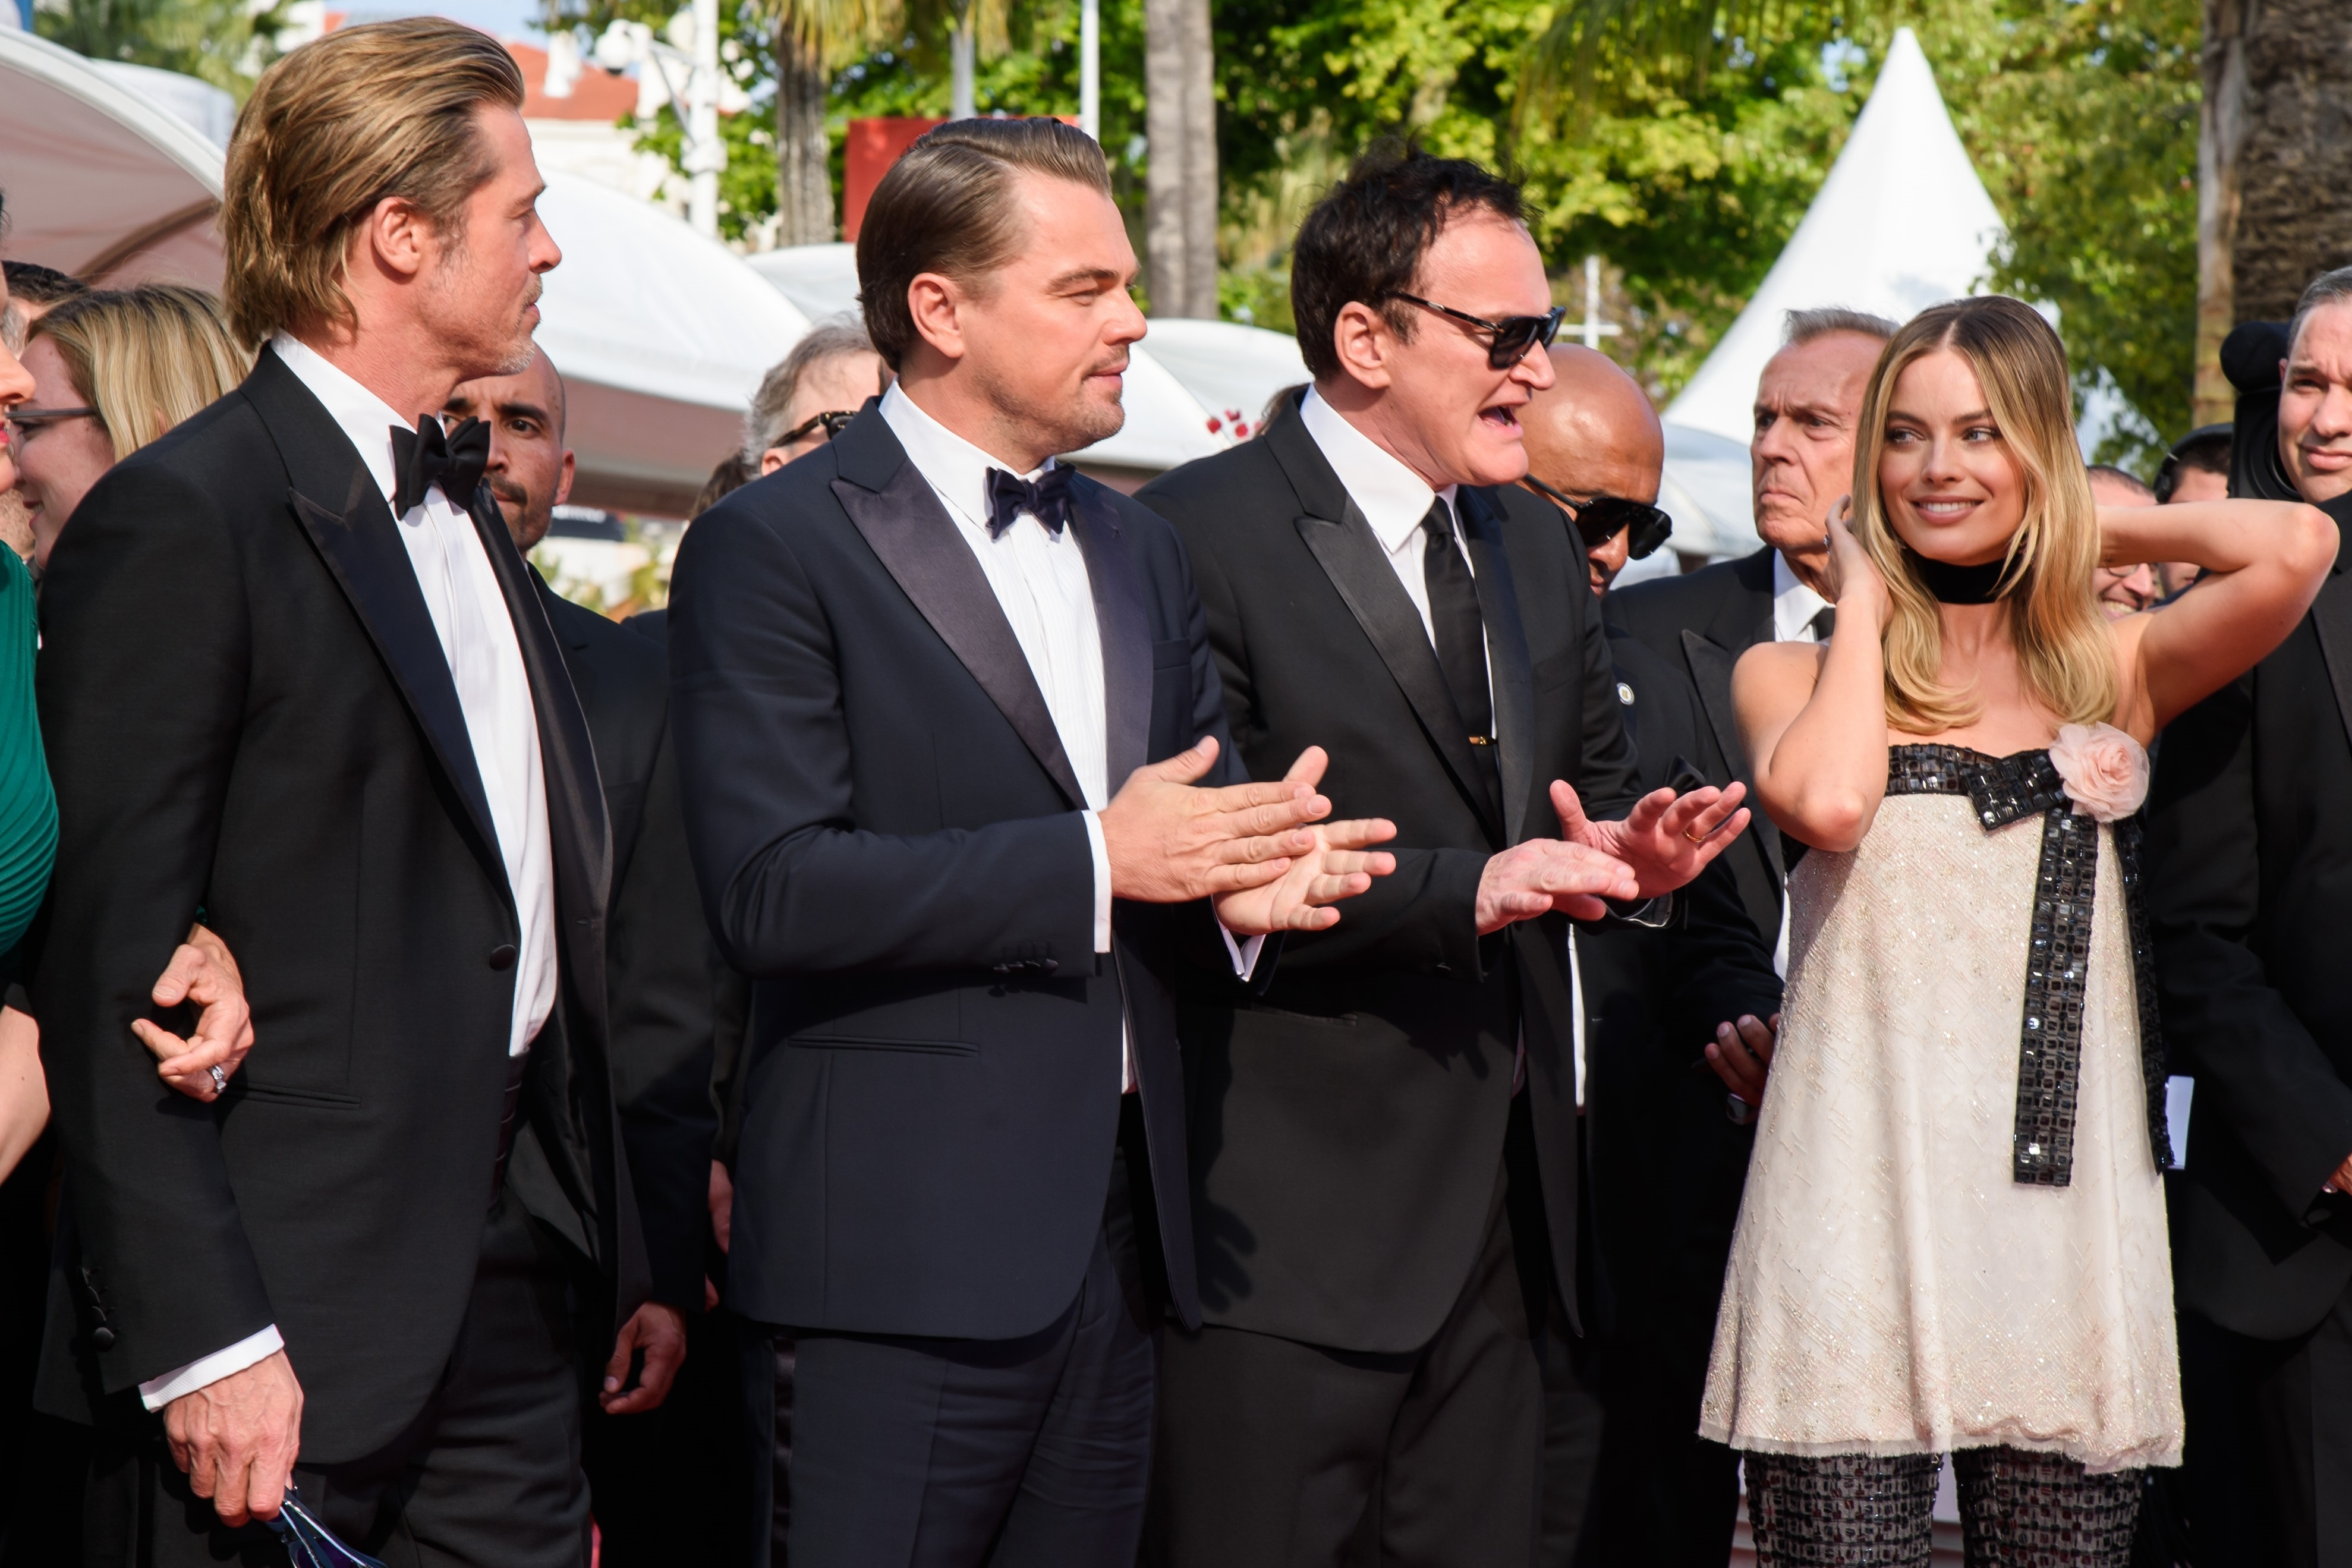 1558693308631_Cannes 21 May 2019.jpg - Cannes 2019